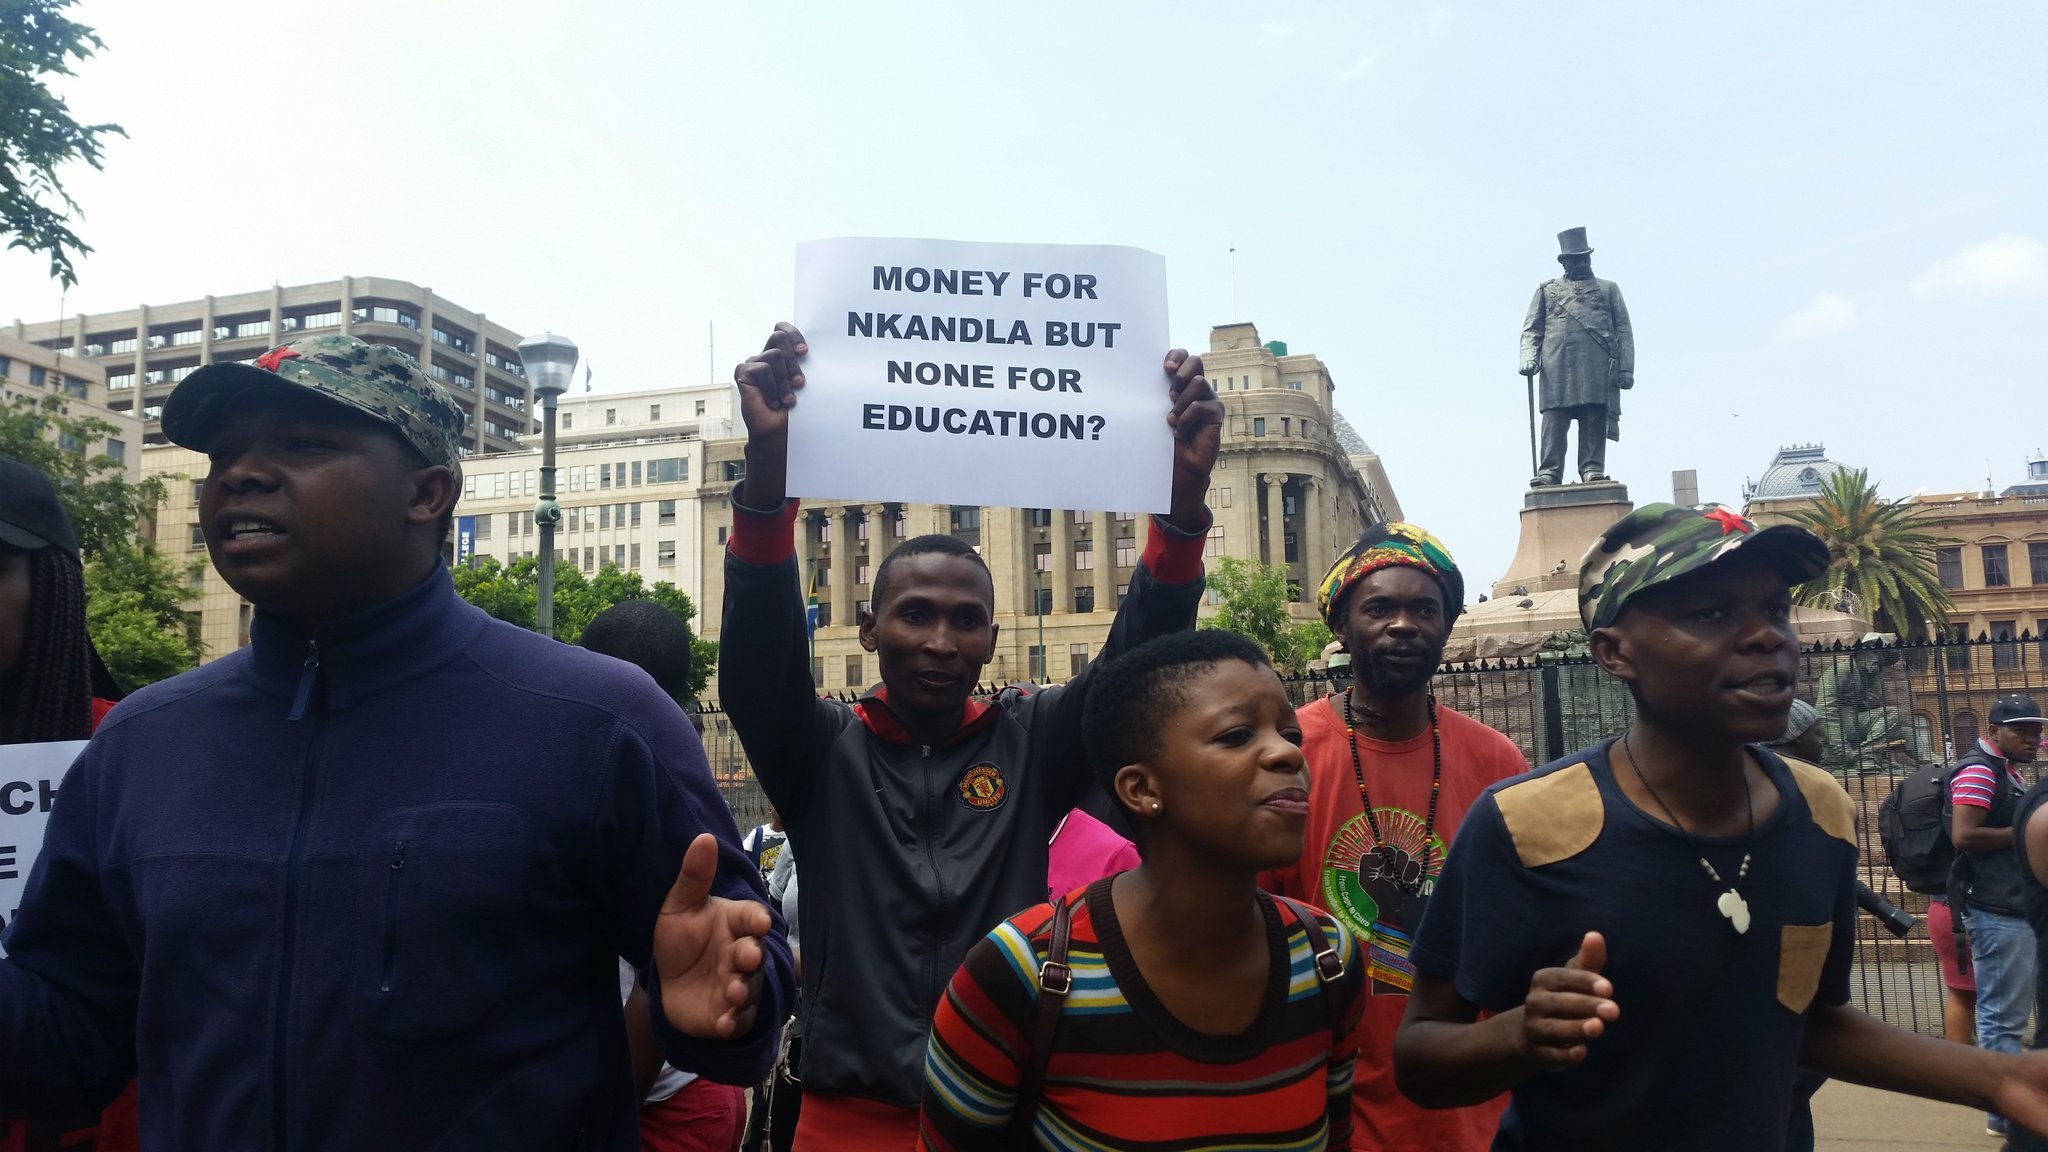 Student Fees March Union Buildings 1